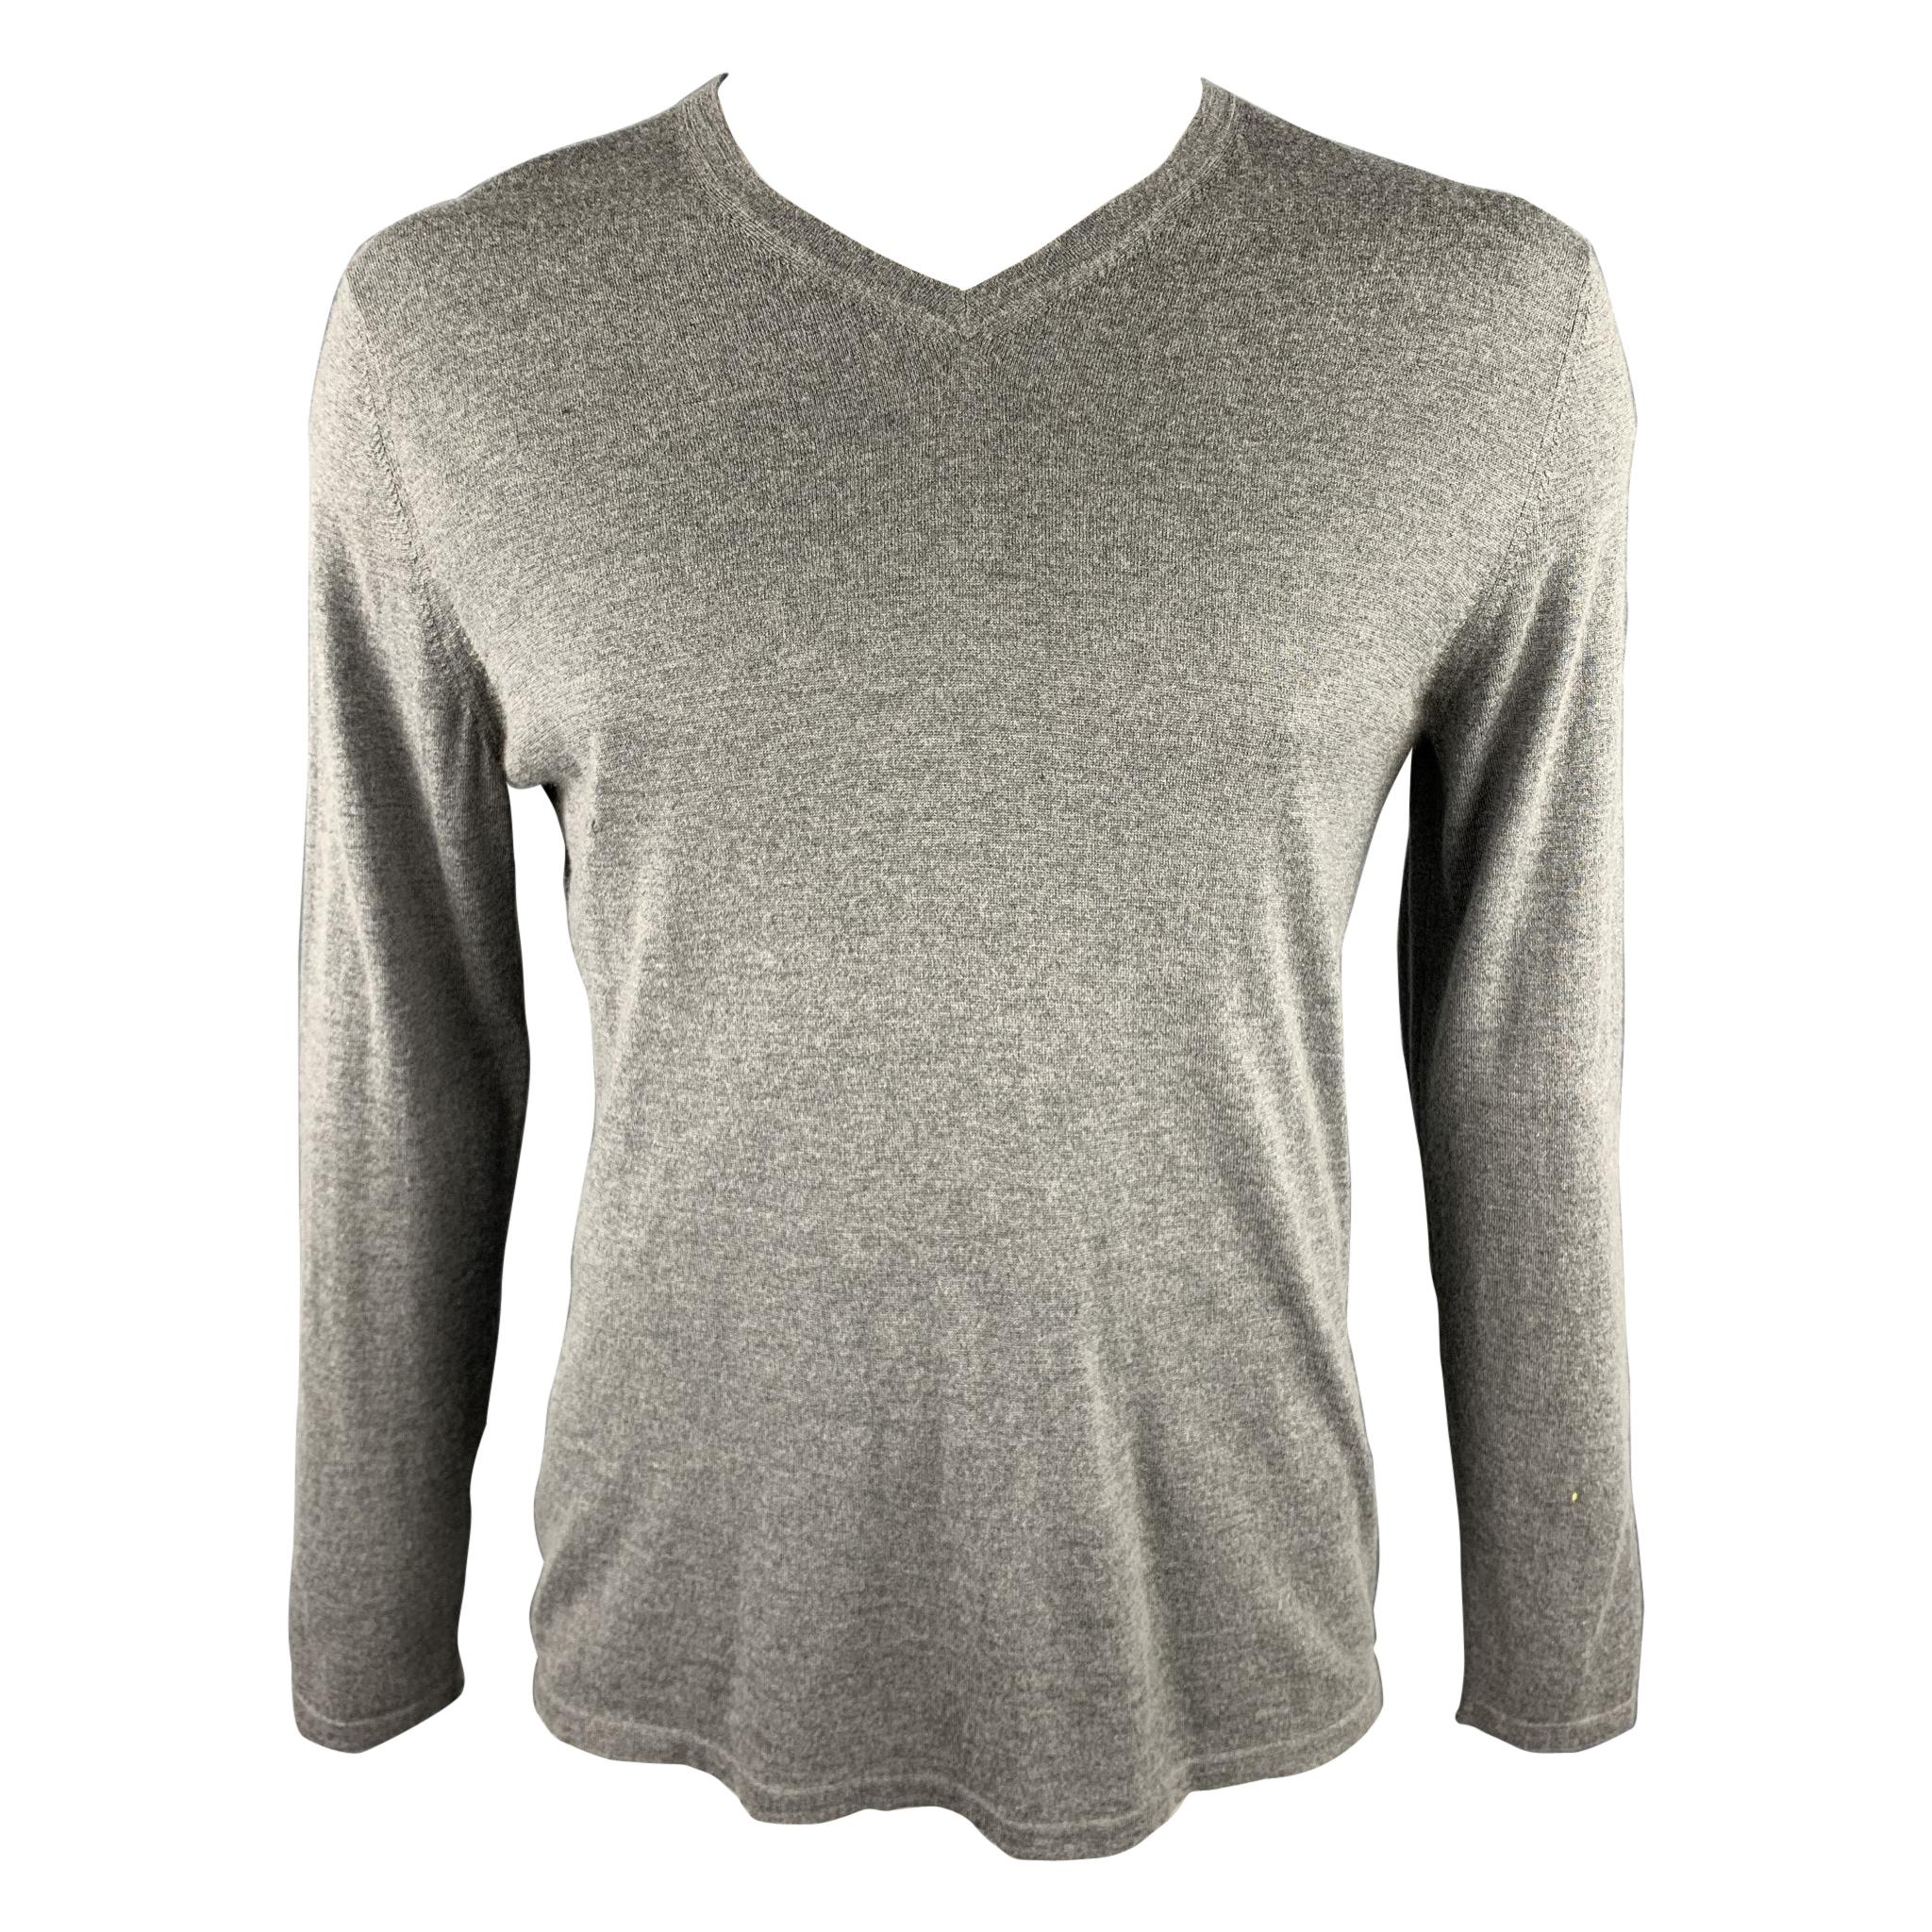 THEORY Size XL Grey Silk / Cashmere V-Neck Elbow Patch Pullover